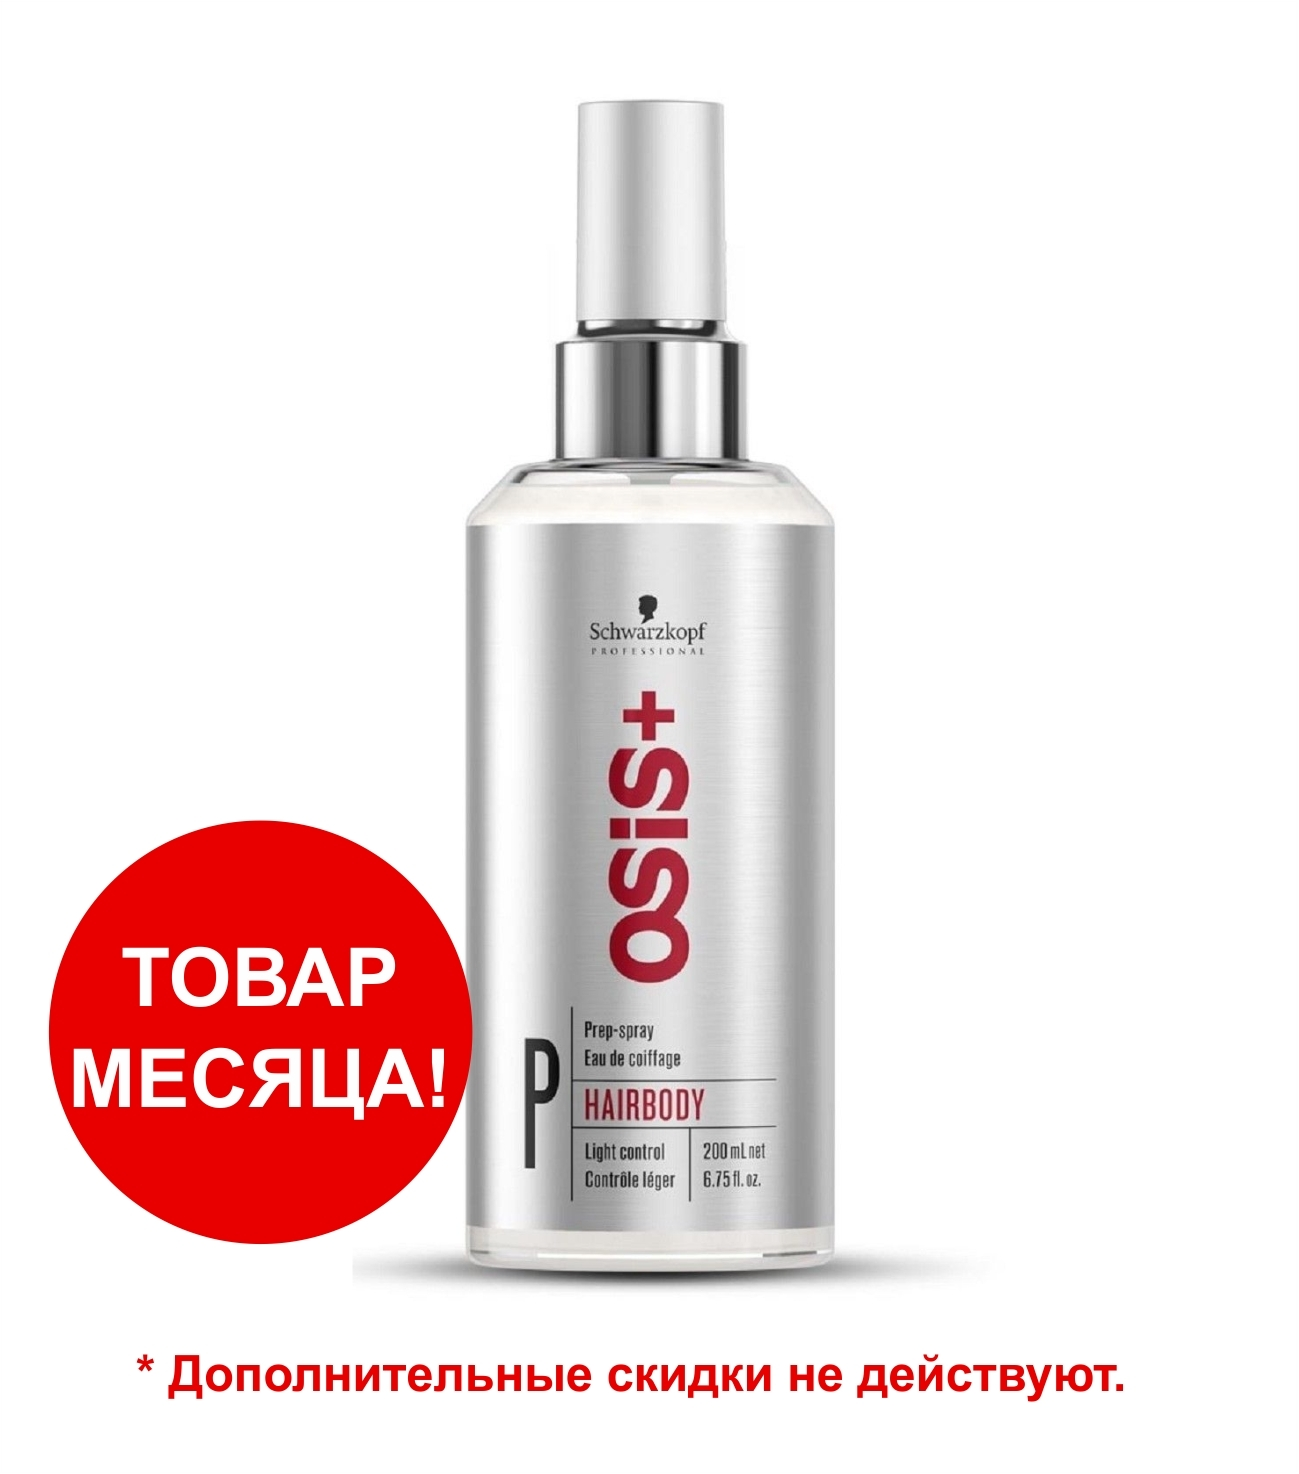 Primary image for Schwarzkopf Styling spray with Osis HairBody care complex 200 ml